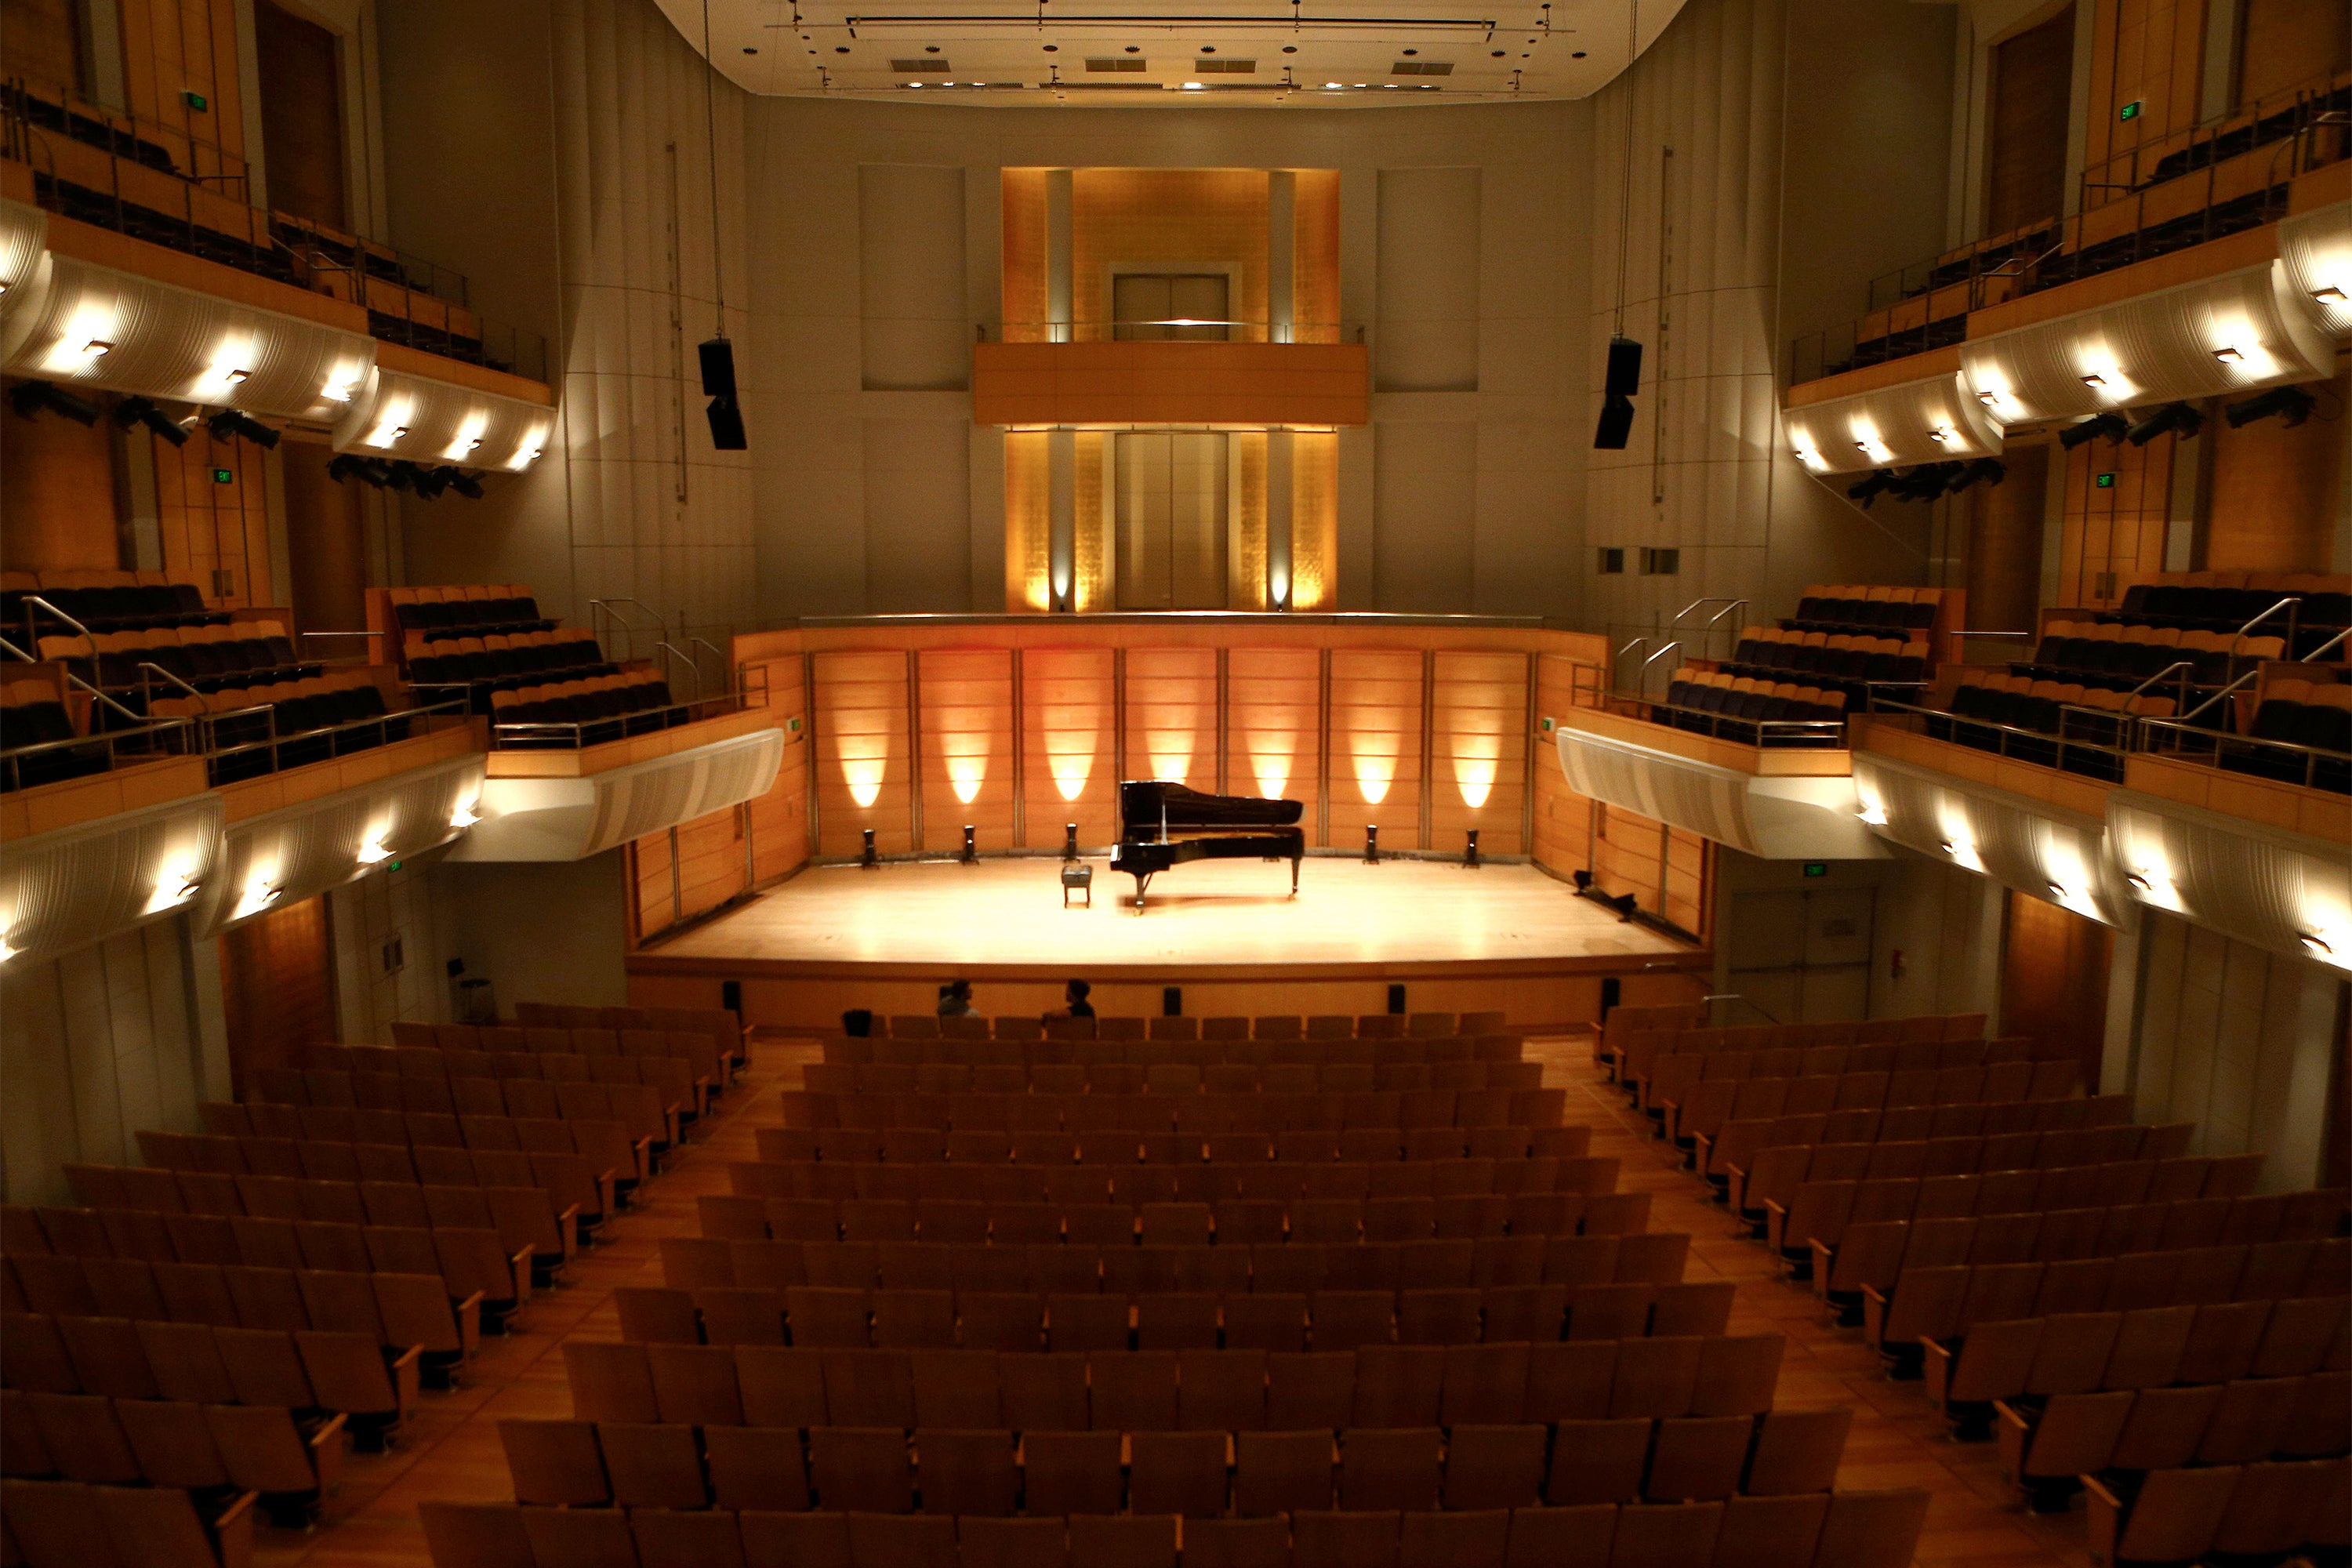 ARRI LED upgrade and replacement of existing 2K Fresnels at City Recital Hall